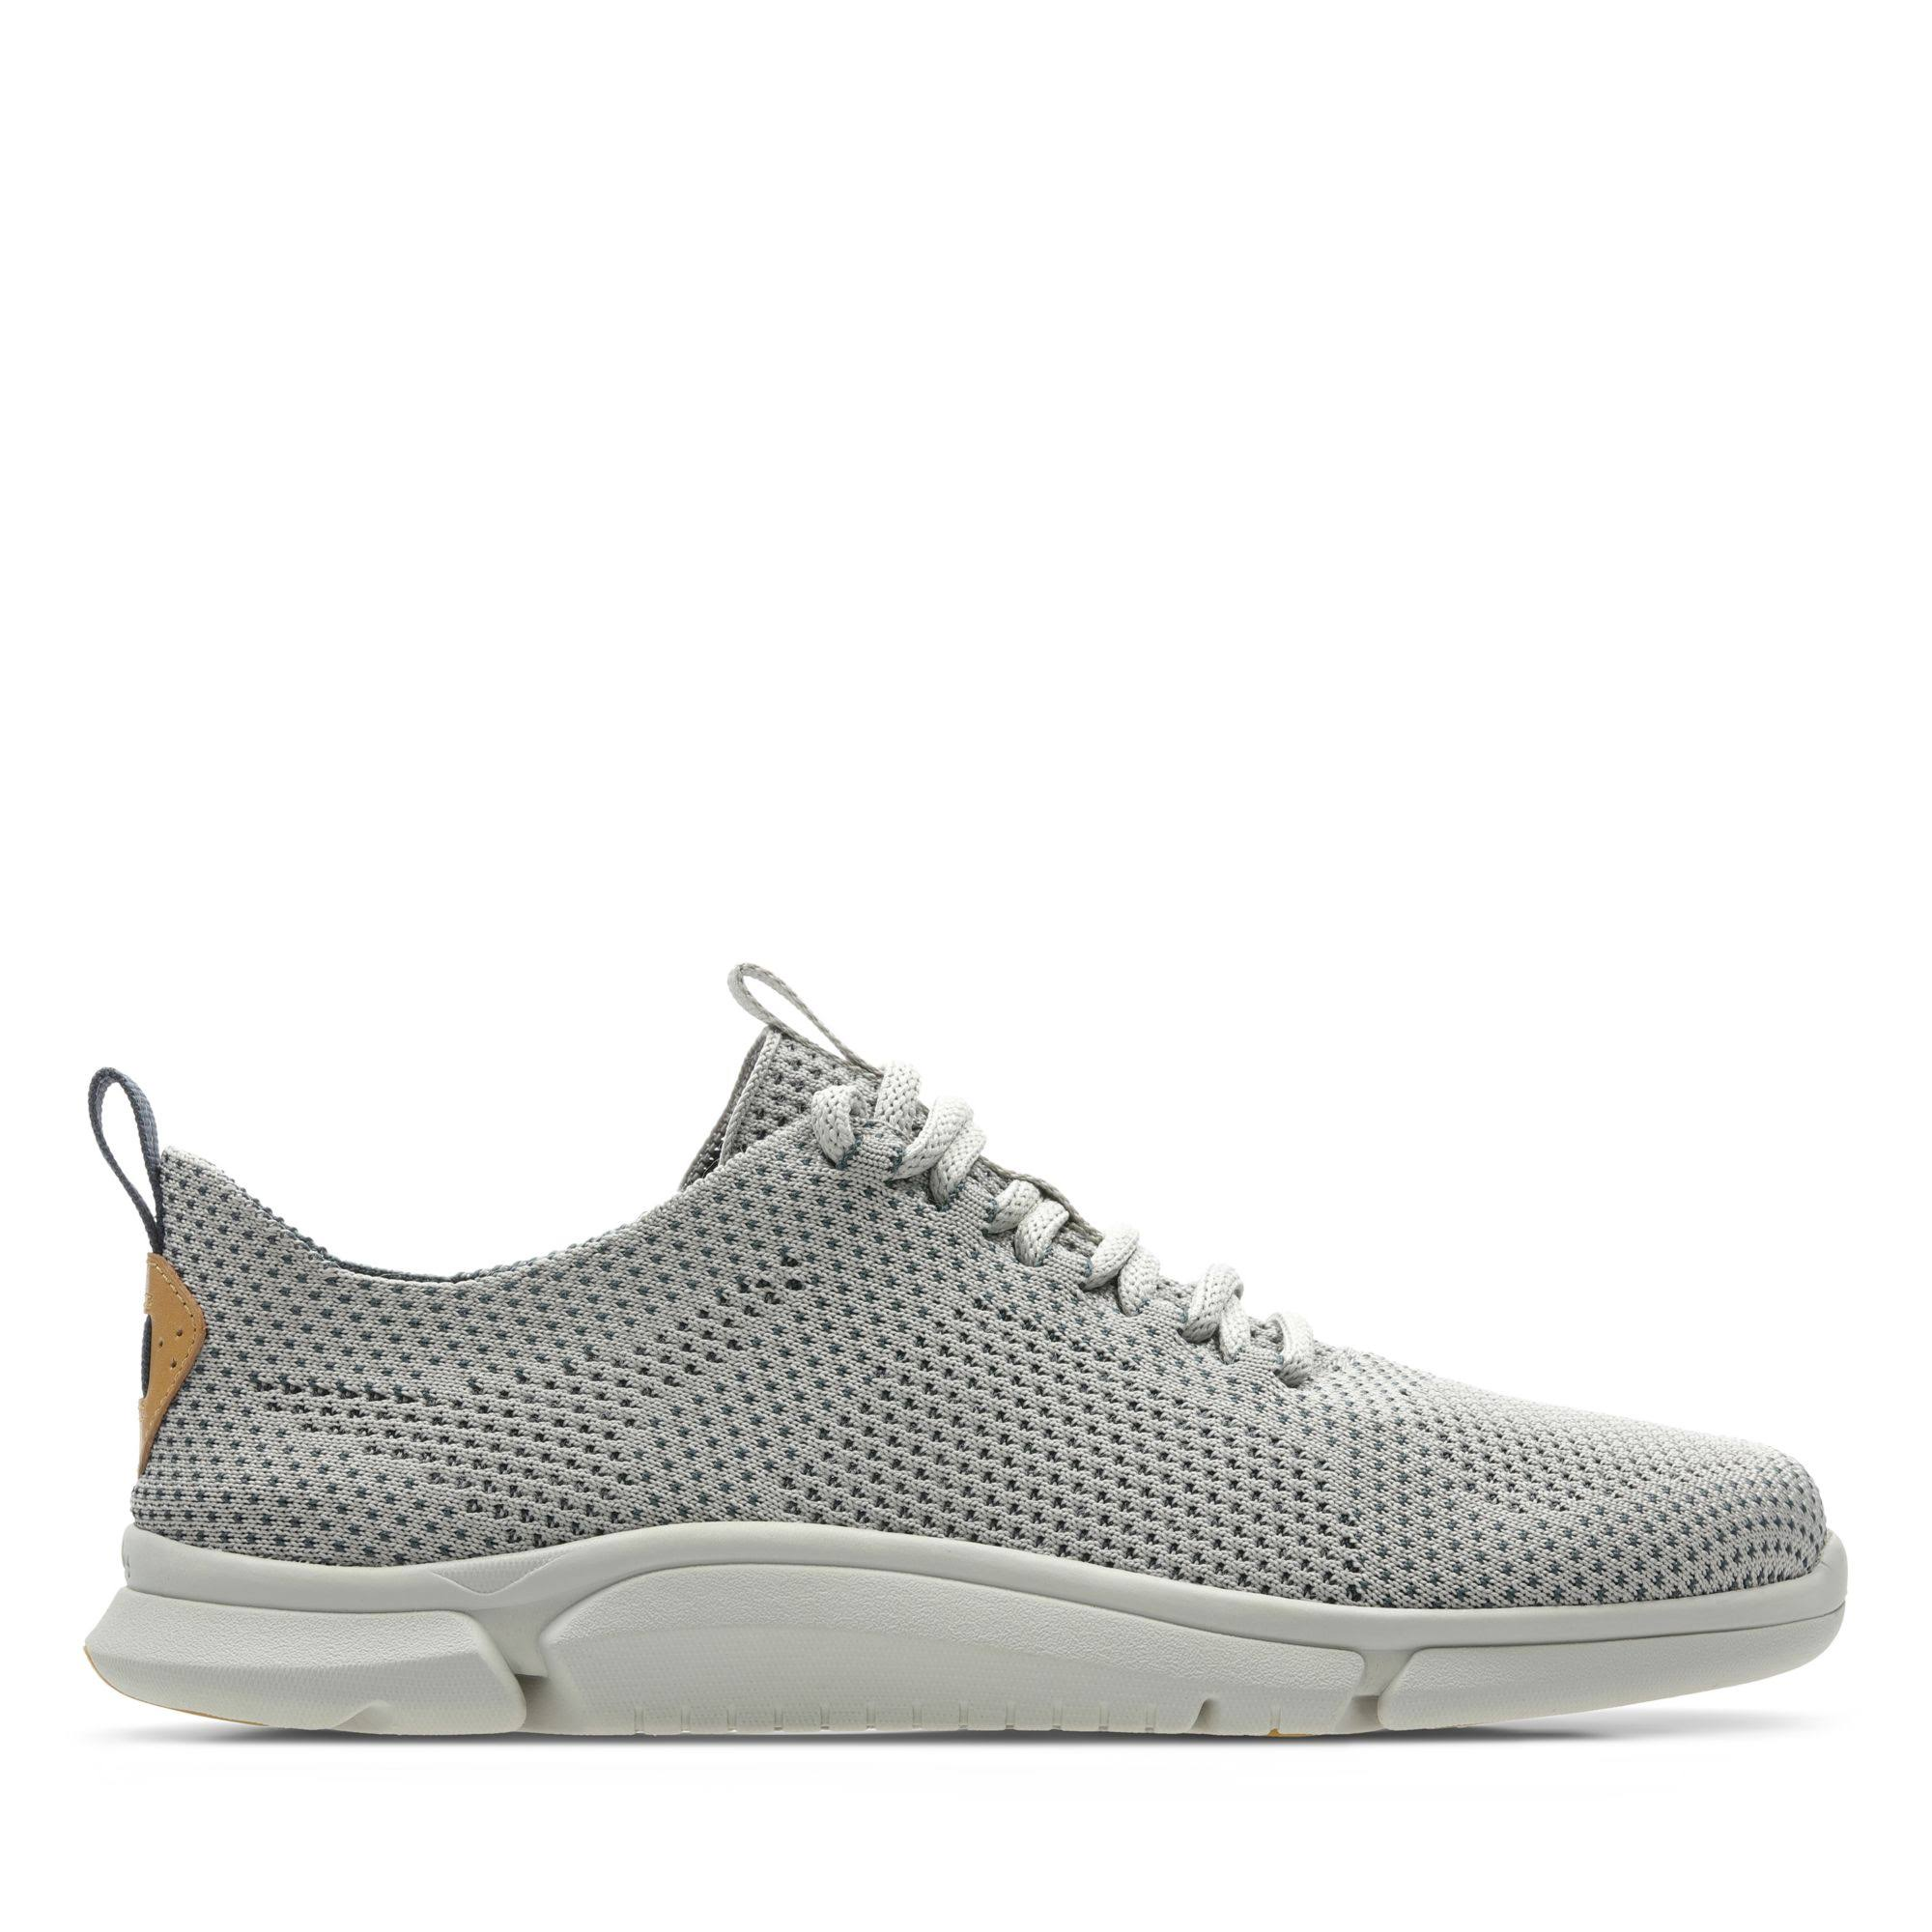 Taglia Grey Mens Triken Di Ruze Clarks 9 Run Leather Shoes OkXPuZiT